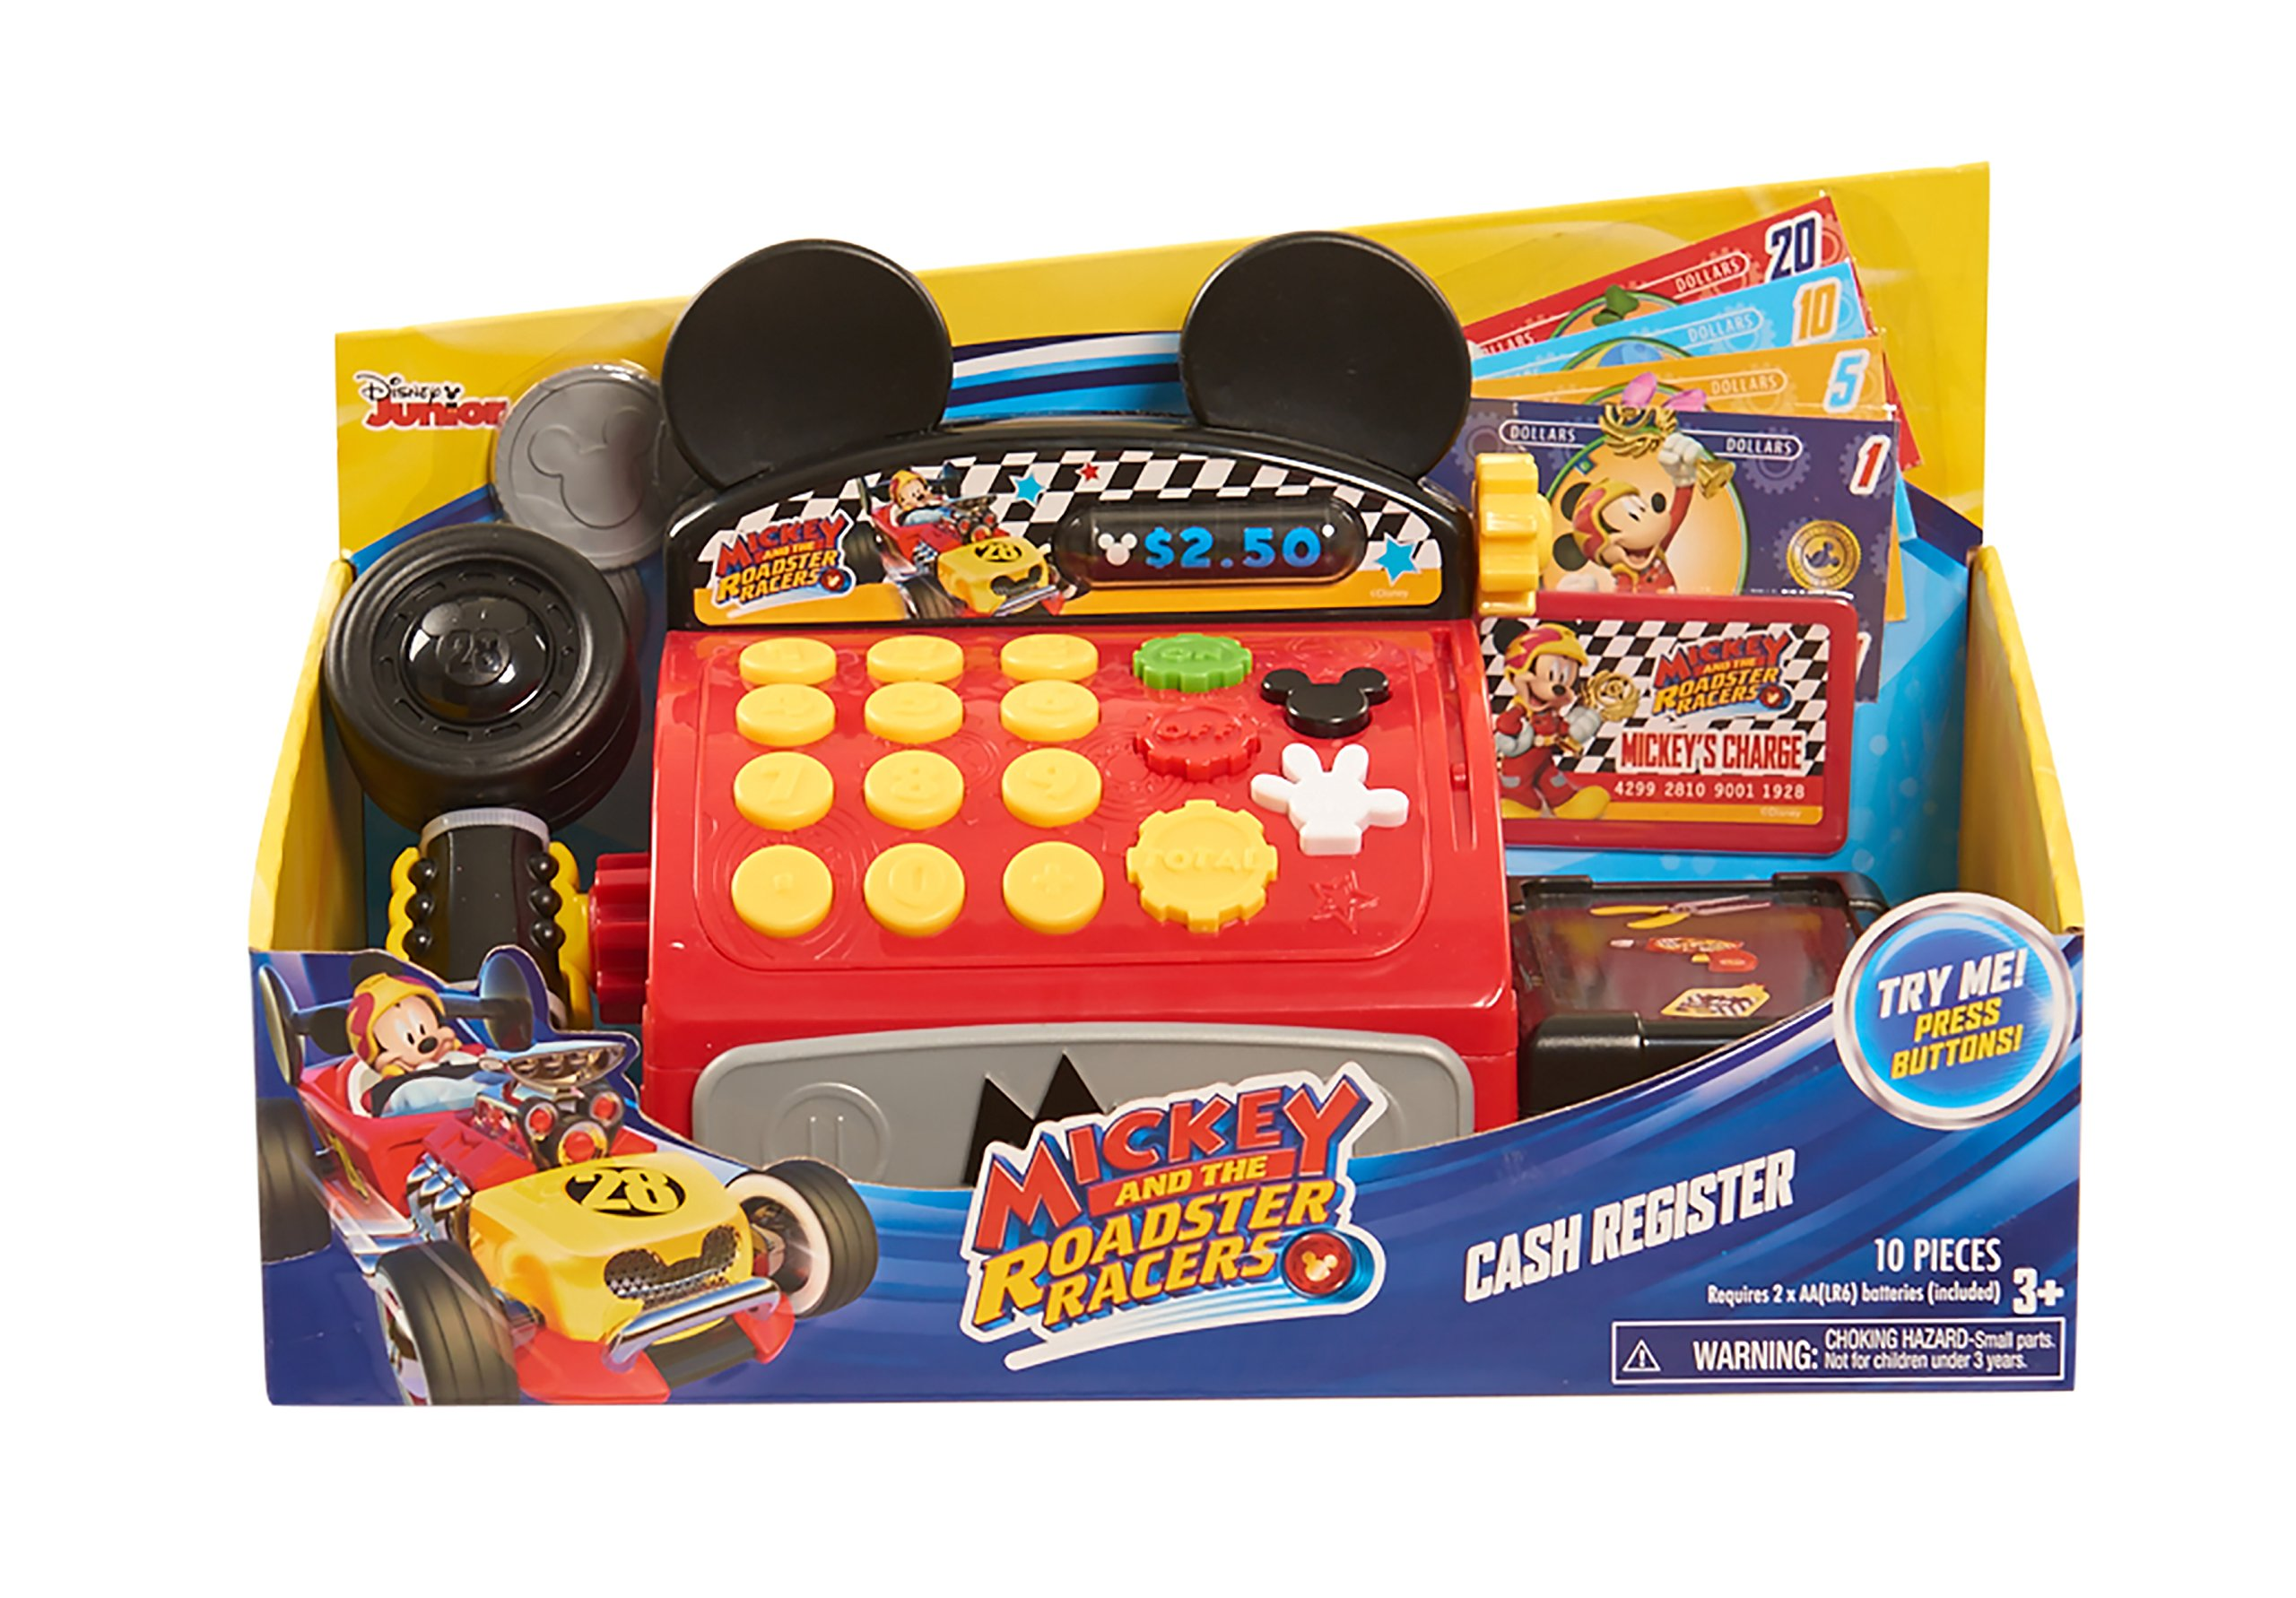 Mickey and the Roadster Racer Cash Register by MICKEY ROADSTERS